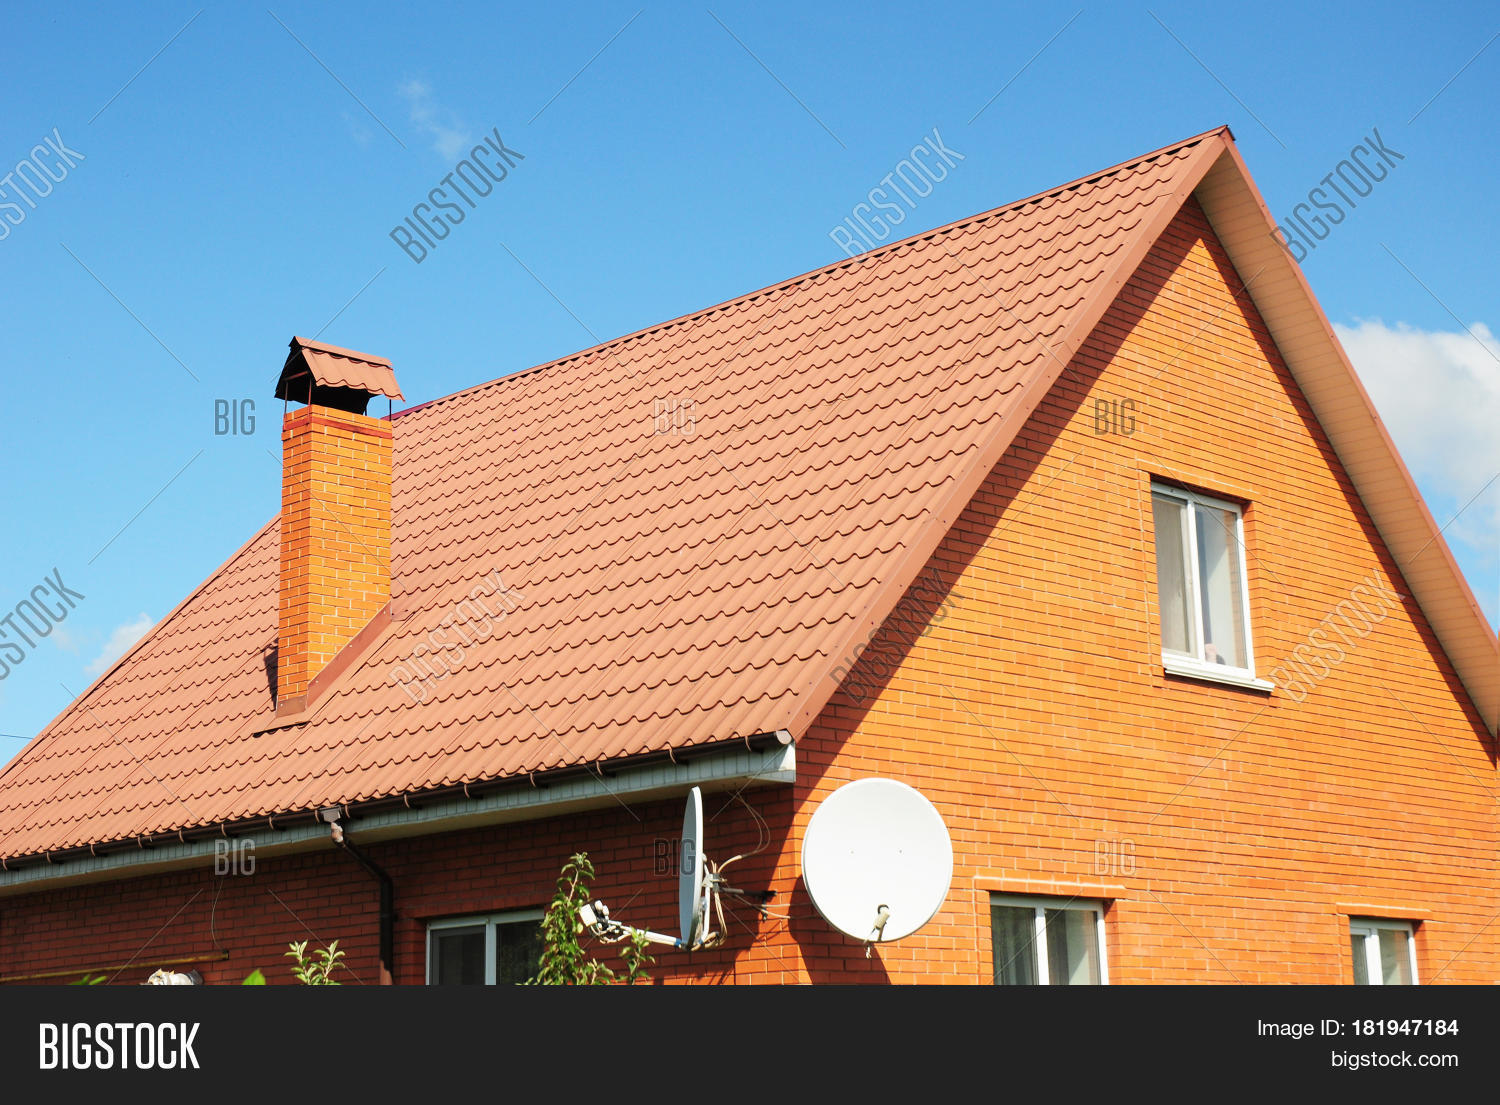 Red old metal house roof tiles image photo bigstock for House roof construction